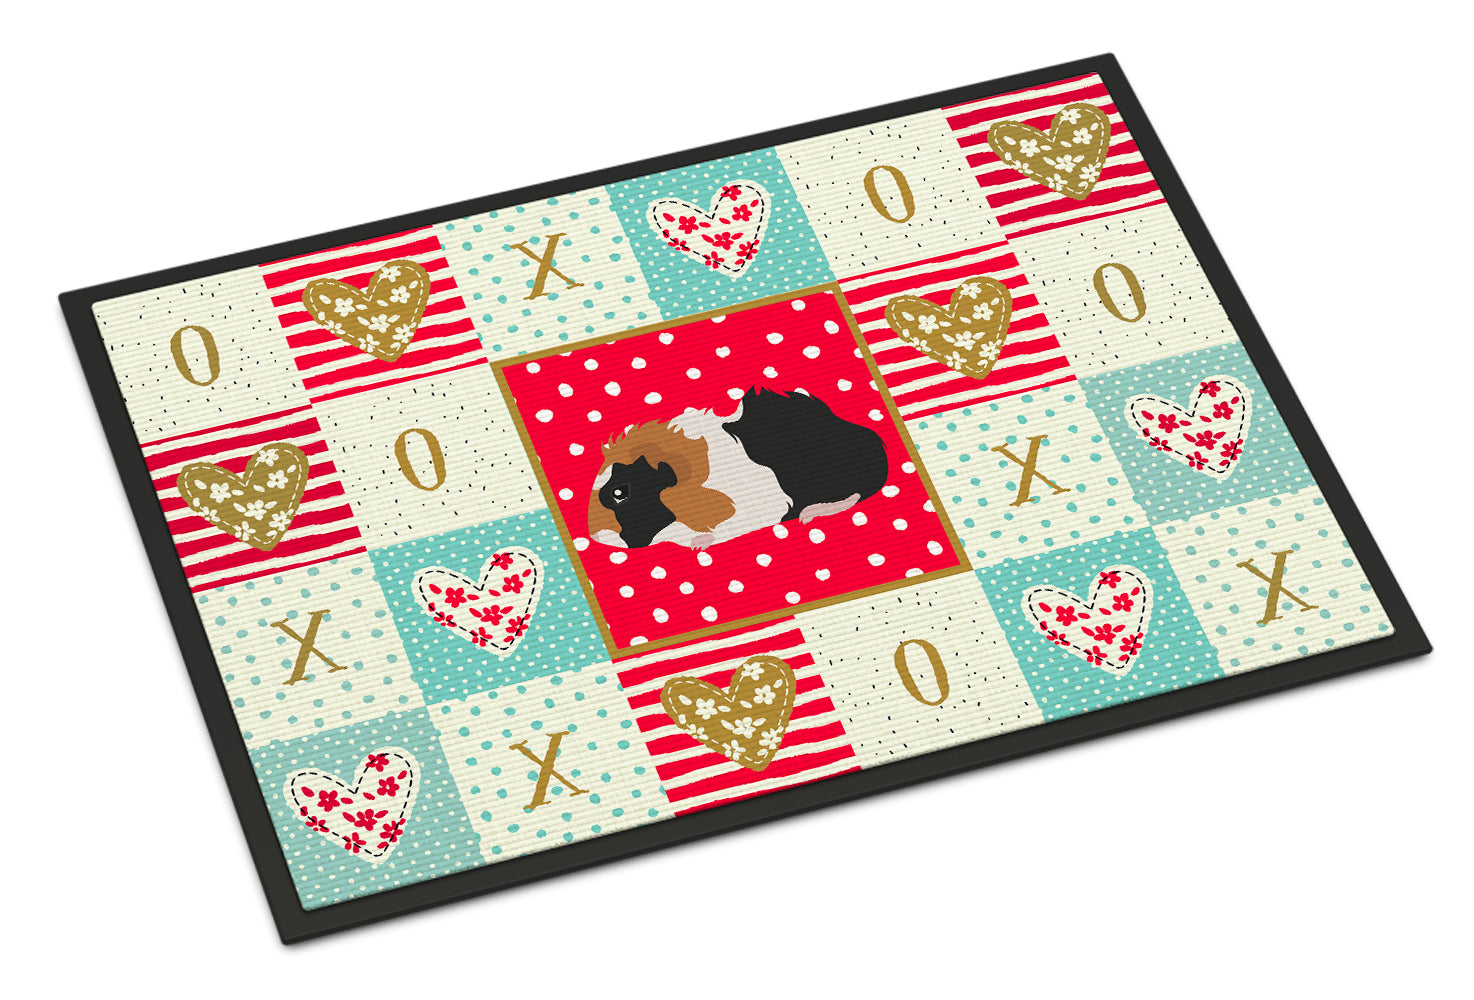 Abyssinian Guinea Pig Love Indoor or Outdoor Mat 18x27 CK5426MAT by Caroline's Treasures